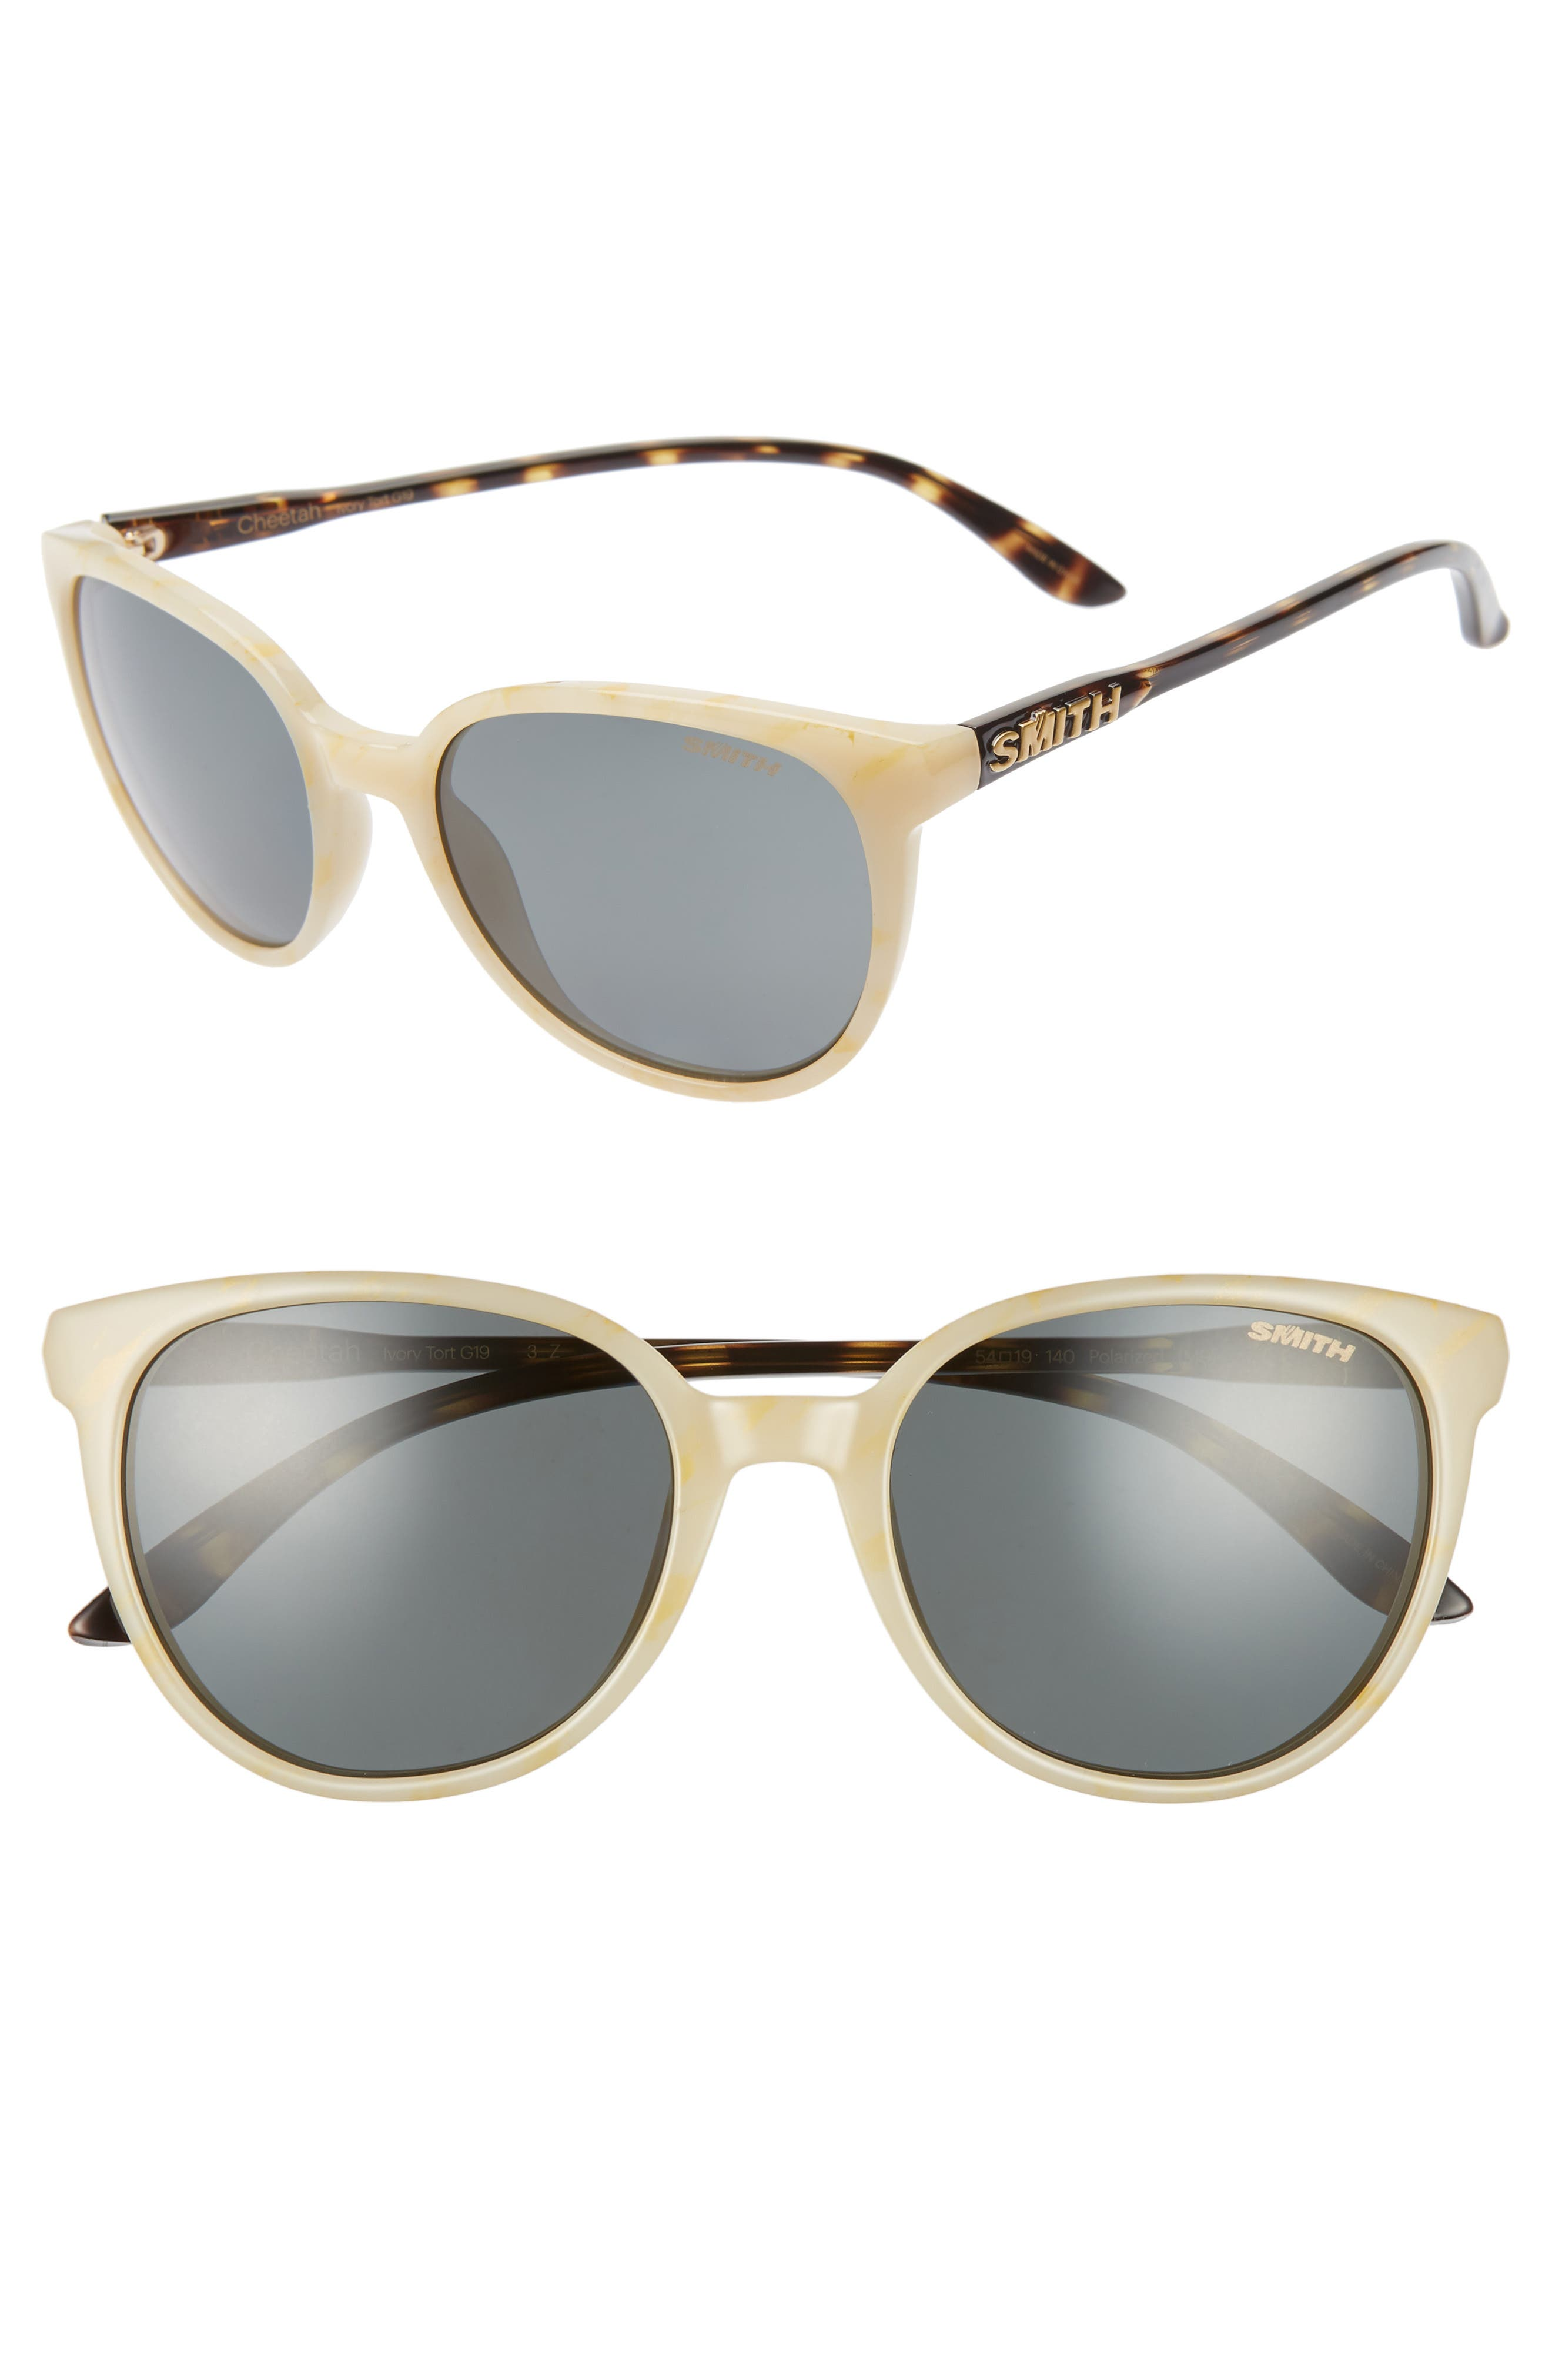 Cheetah 54mm ChromaPop<sup>™</sup> Polarized Round Sunglasses, Main, color, IVORY TORTOISE